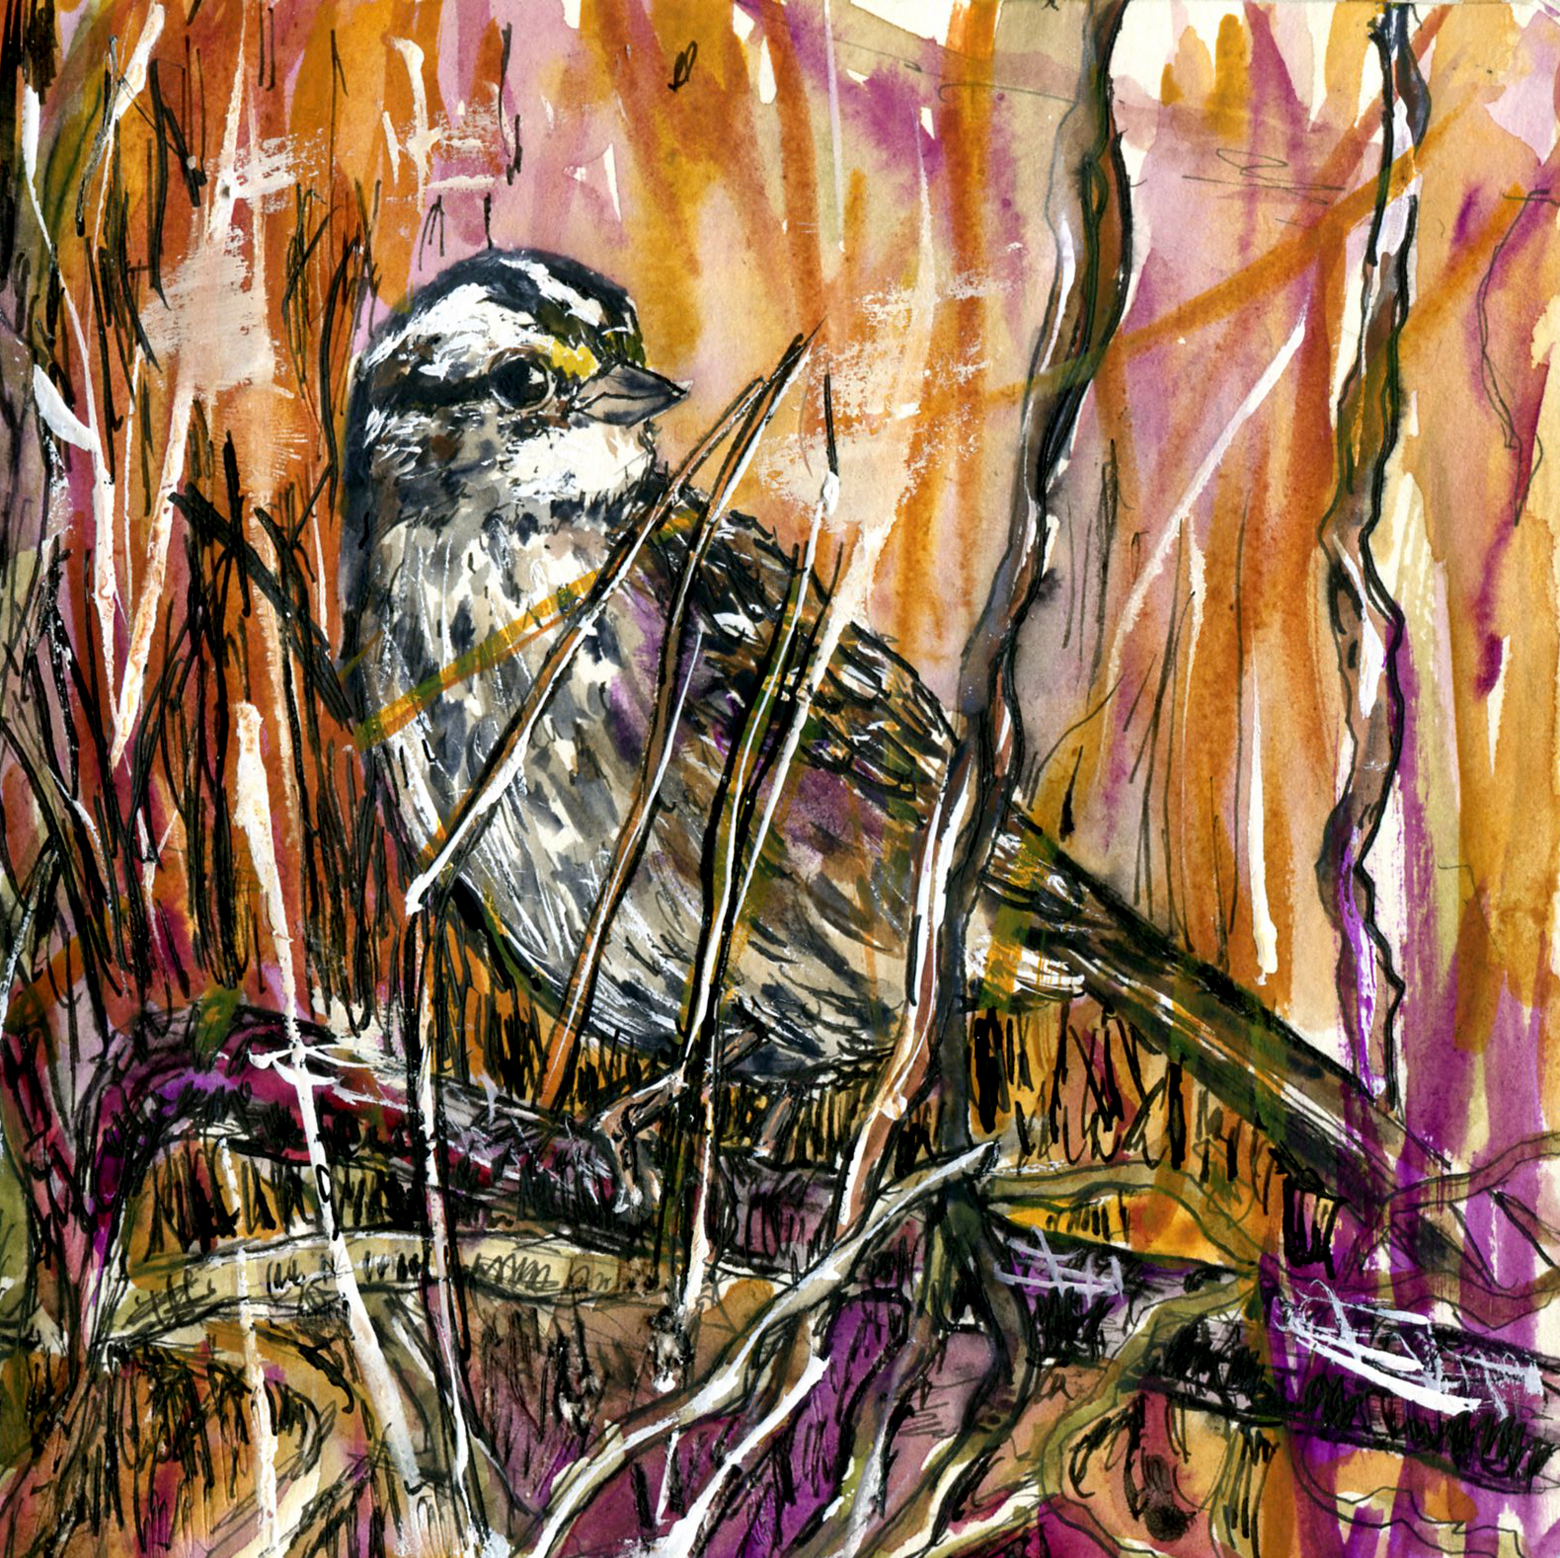 80. White-throated Sparrow